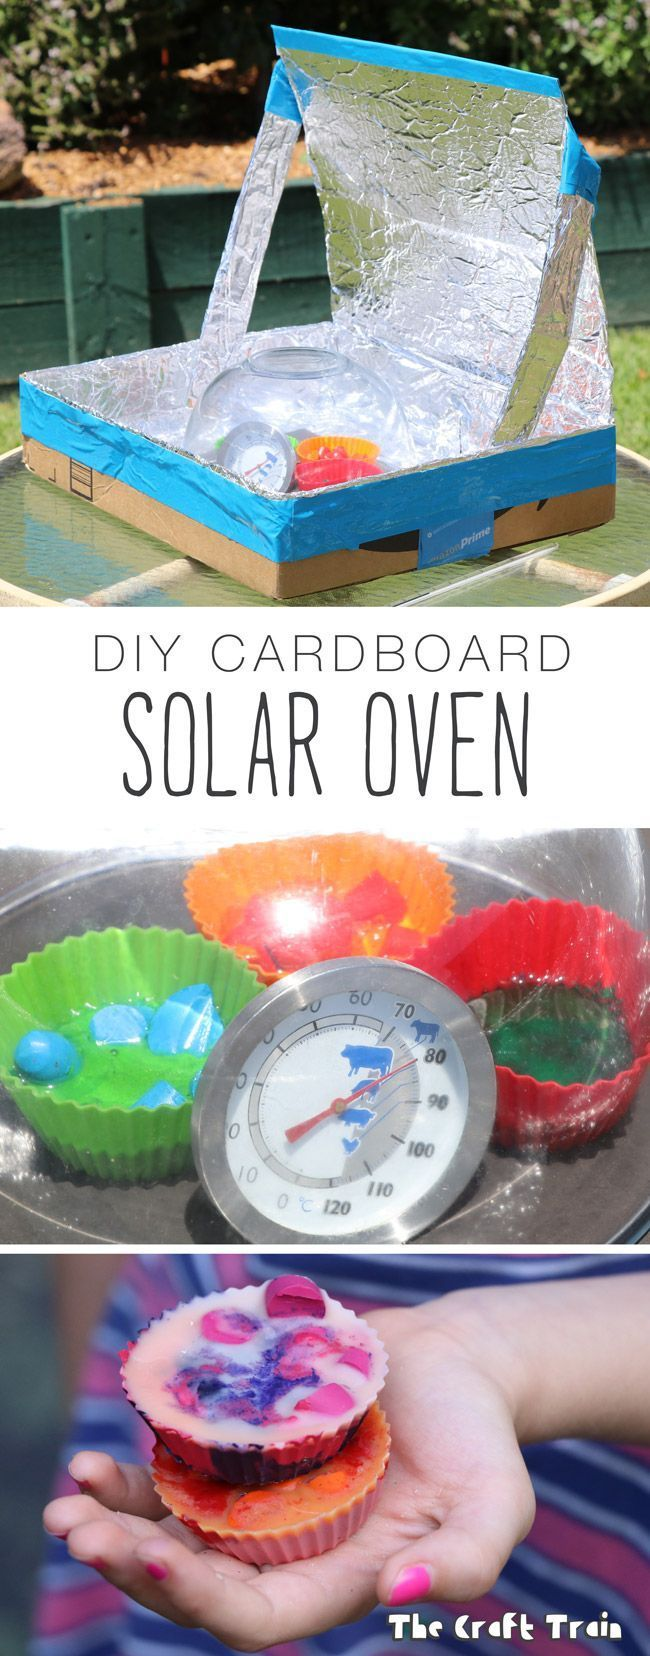 Your kids can make this DIY solar oven from a repurposed cardboard box. Great way to learn about solar energy!